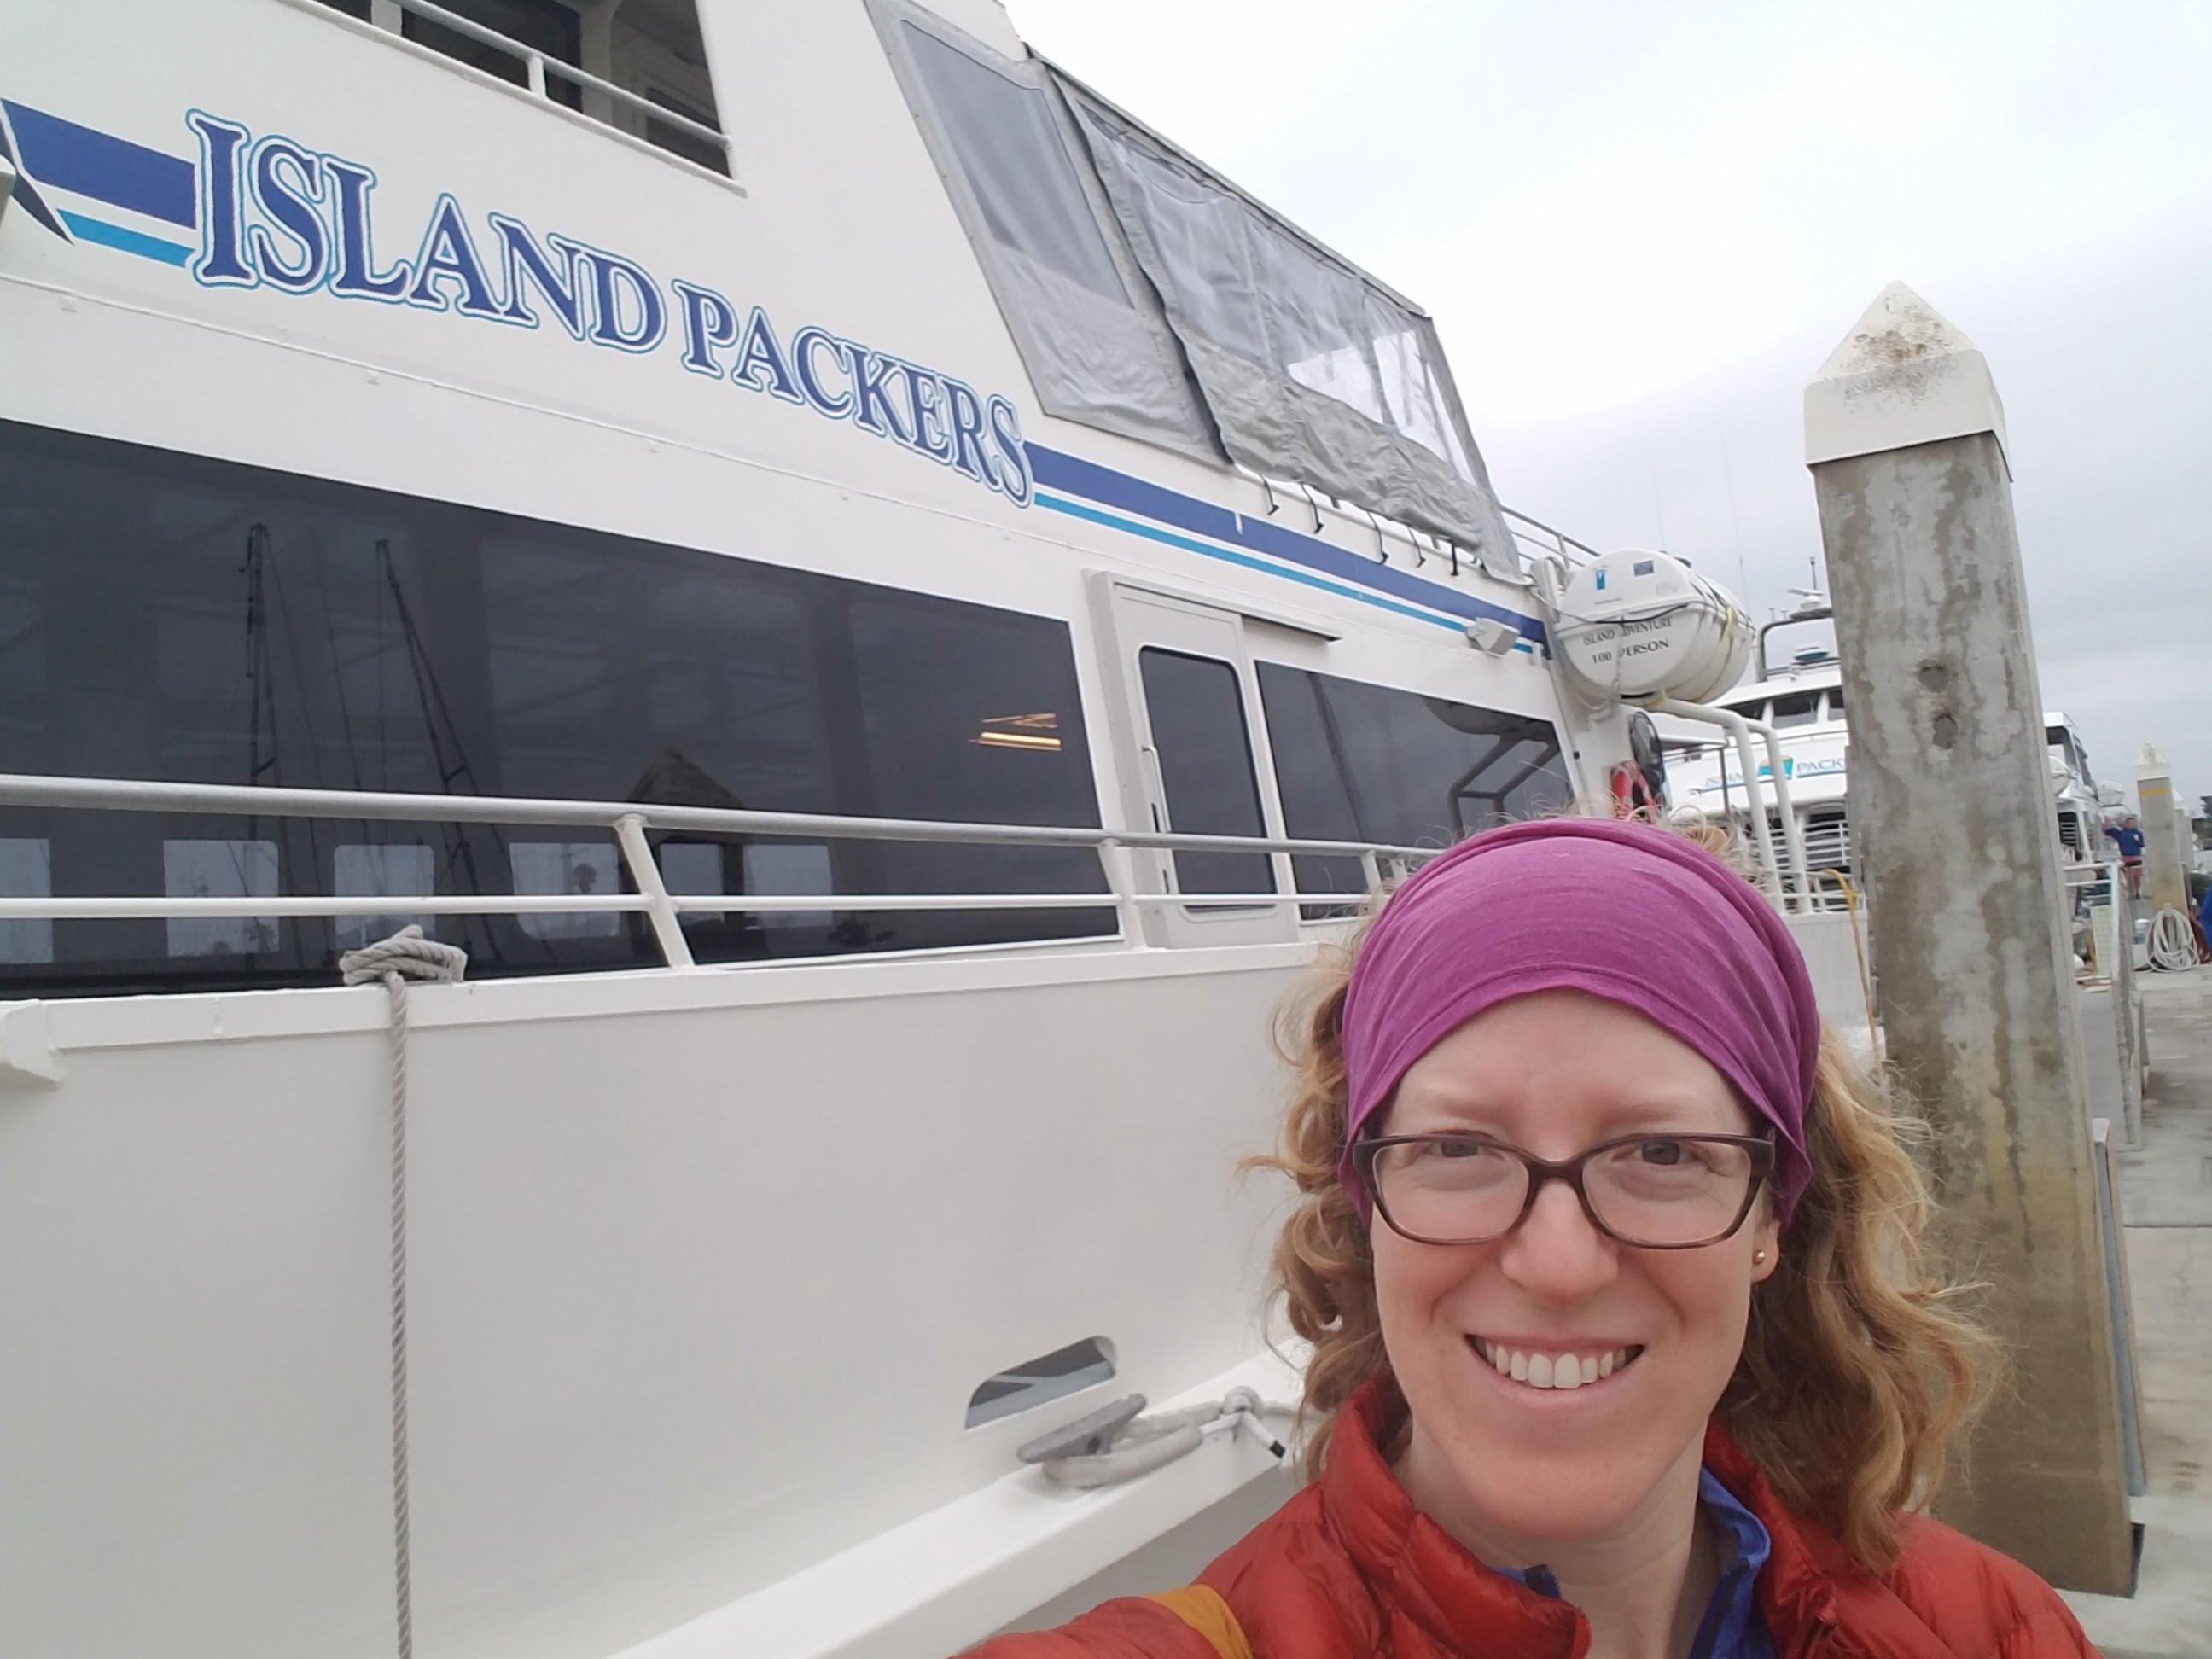 Island Packers Ferry